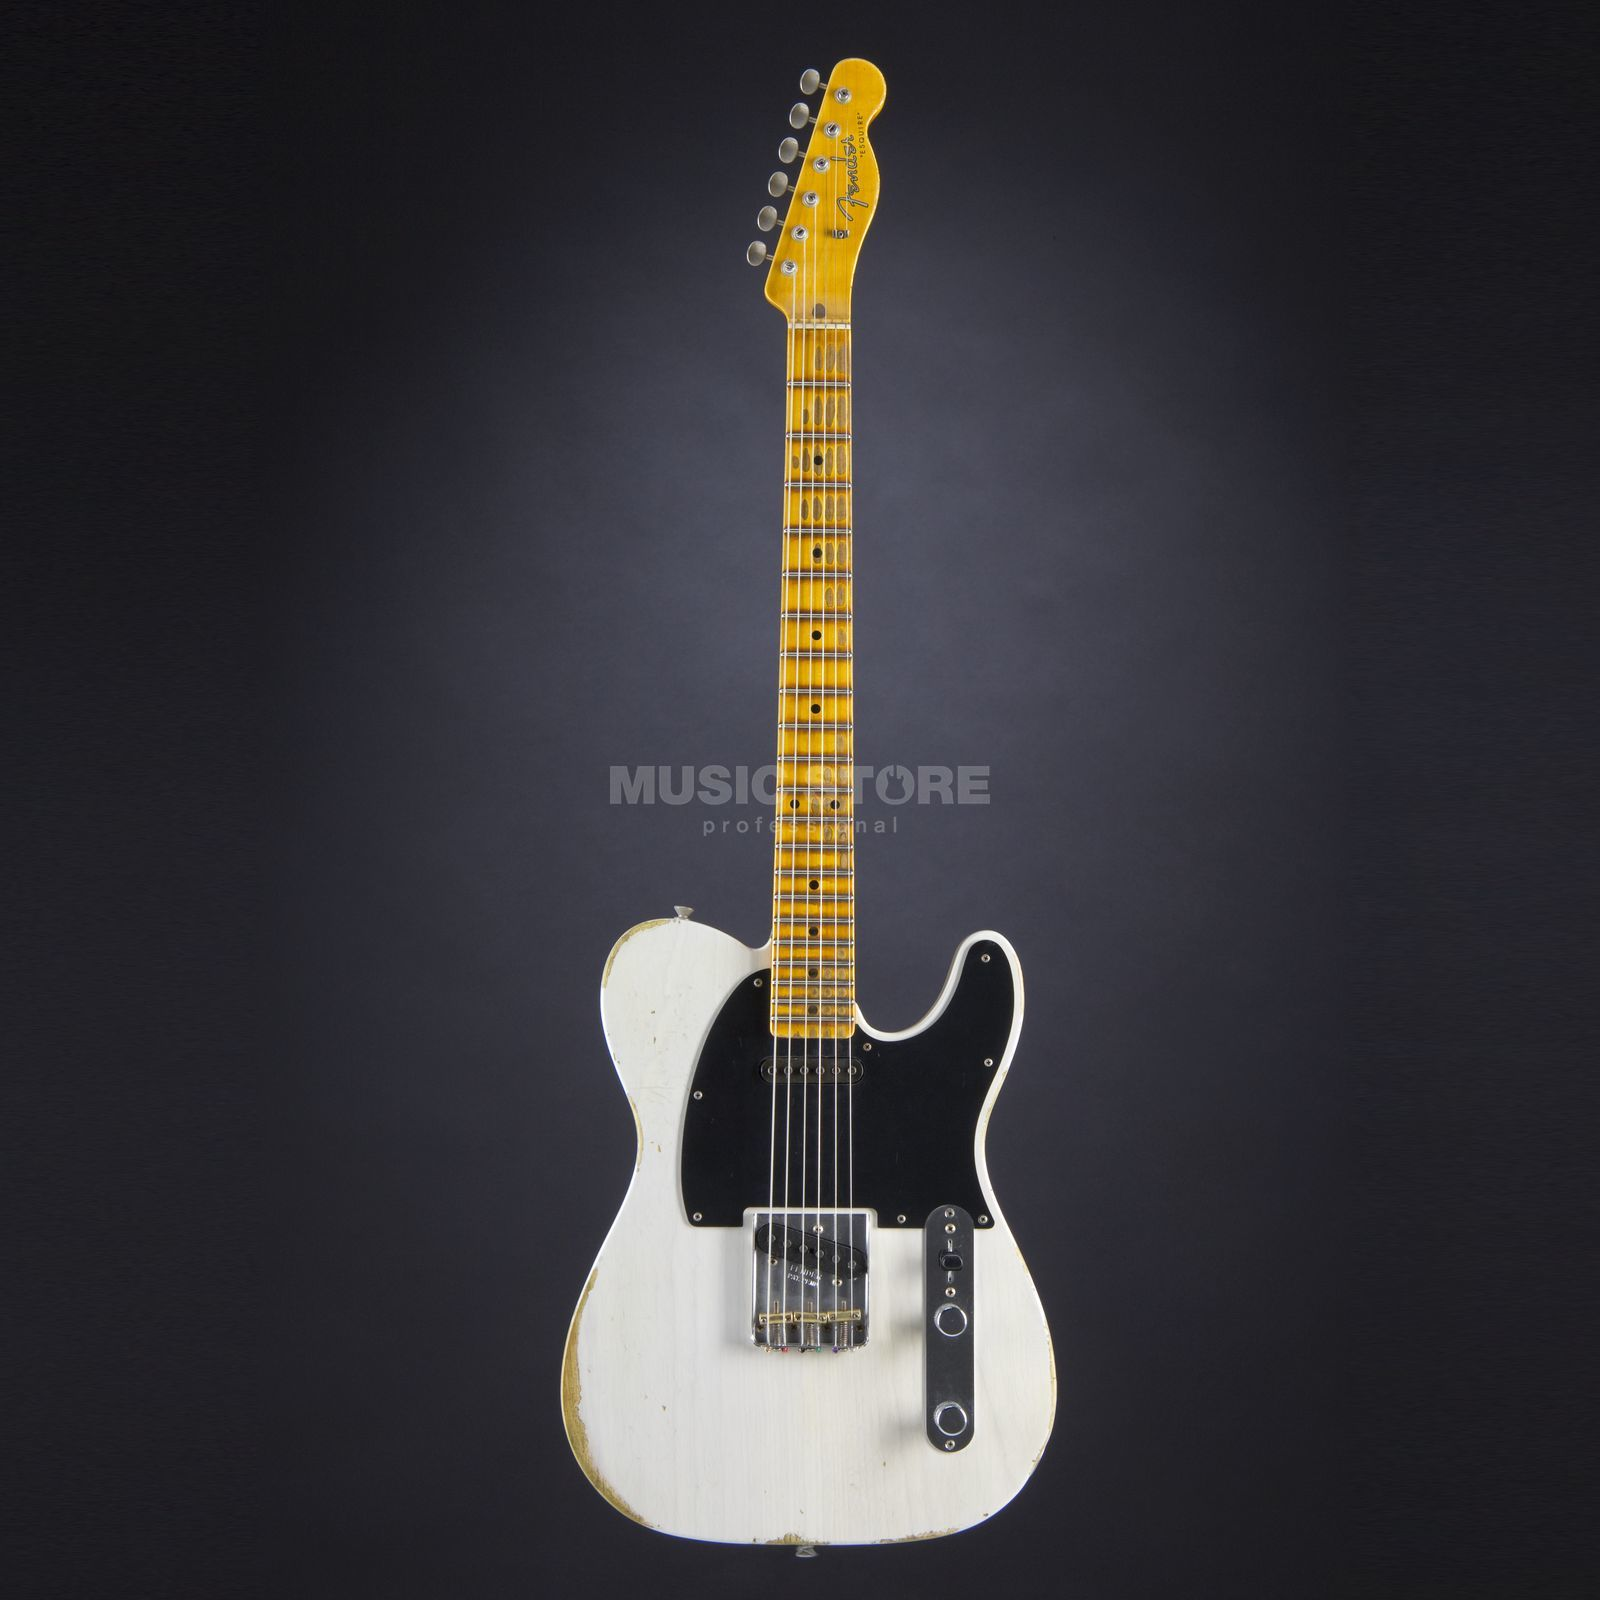 Fender 1959 Heavy Relic Esquire White Blonde #R80735 Produktbild